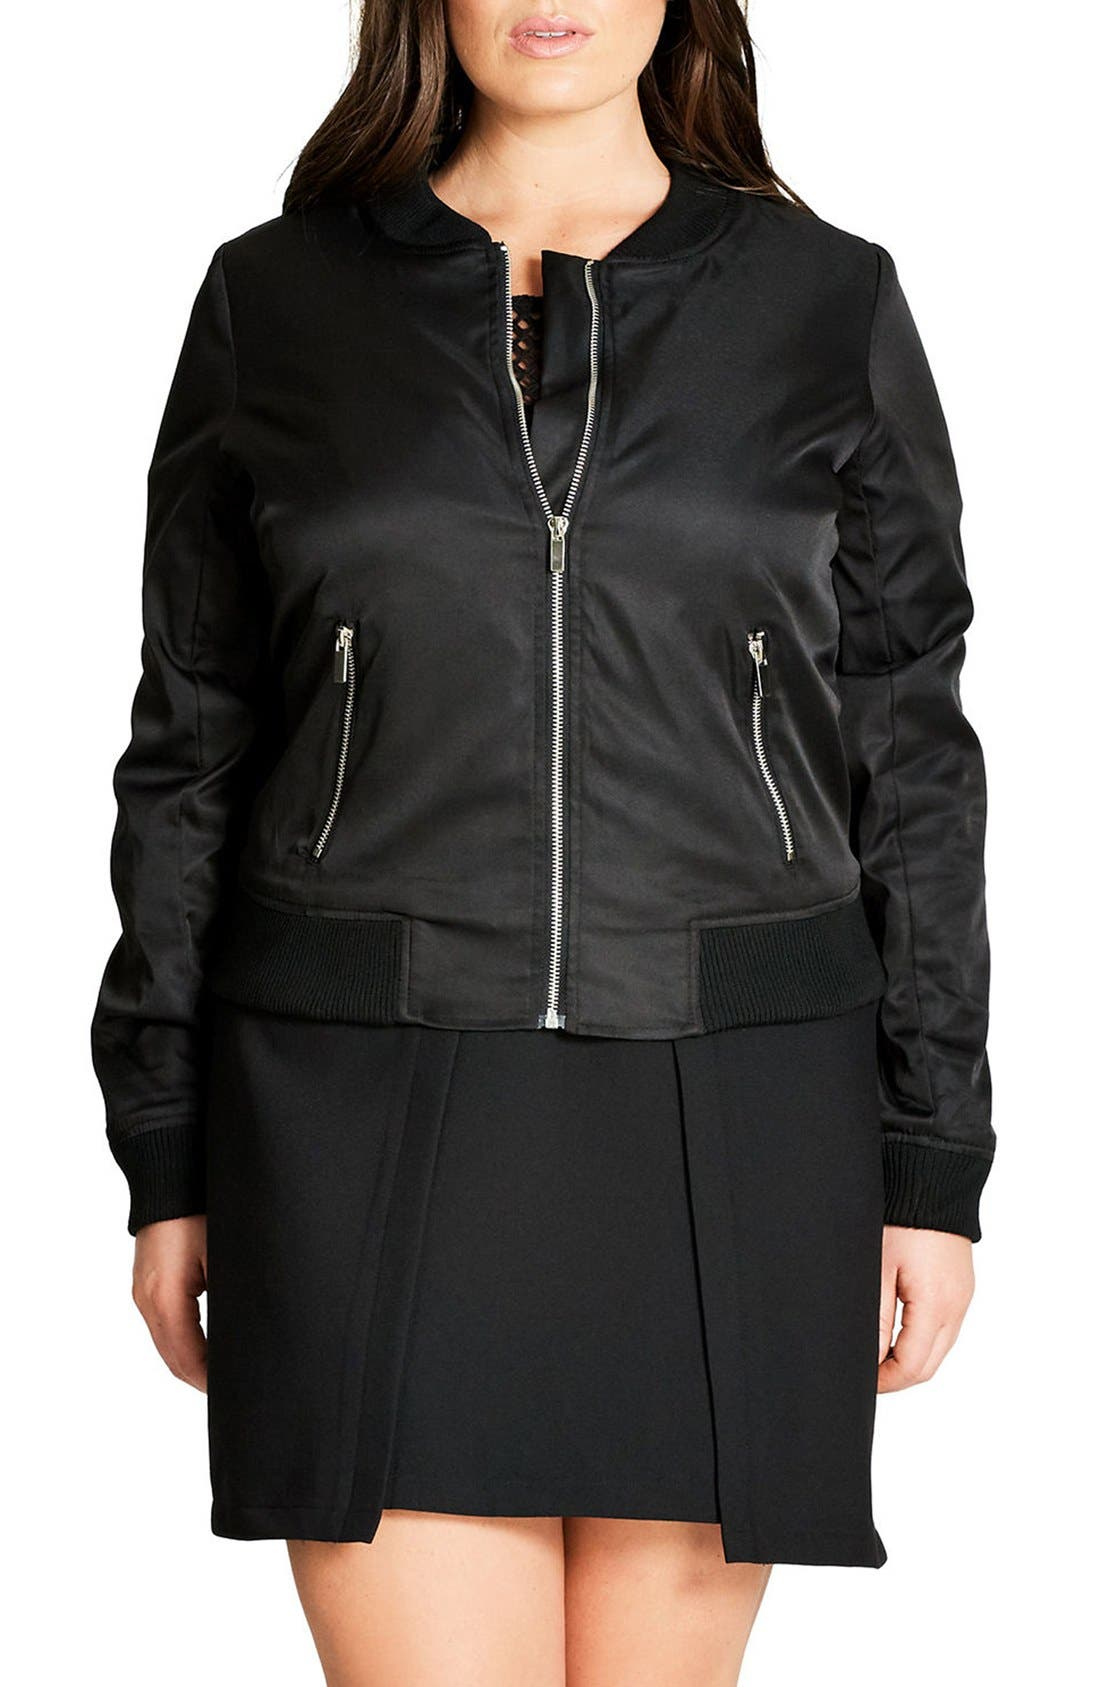 Alternate Image 1 Selected - City Chic Zip Front Bomber Jacket (Plus Size)